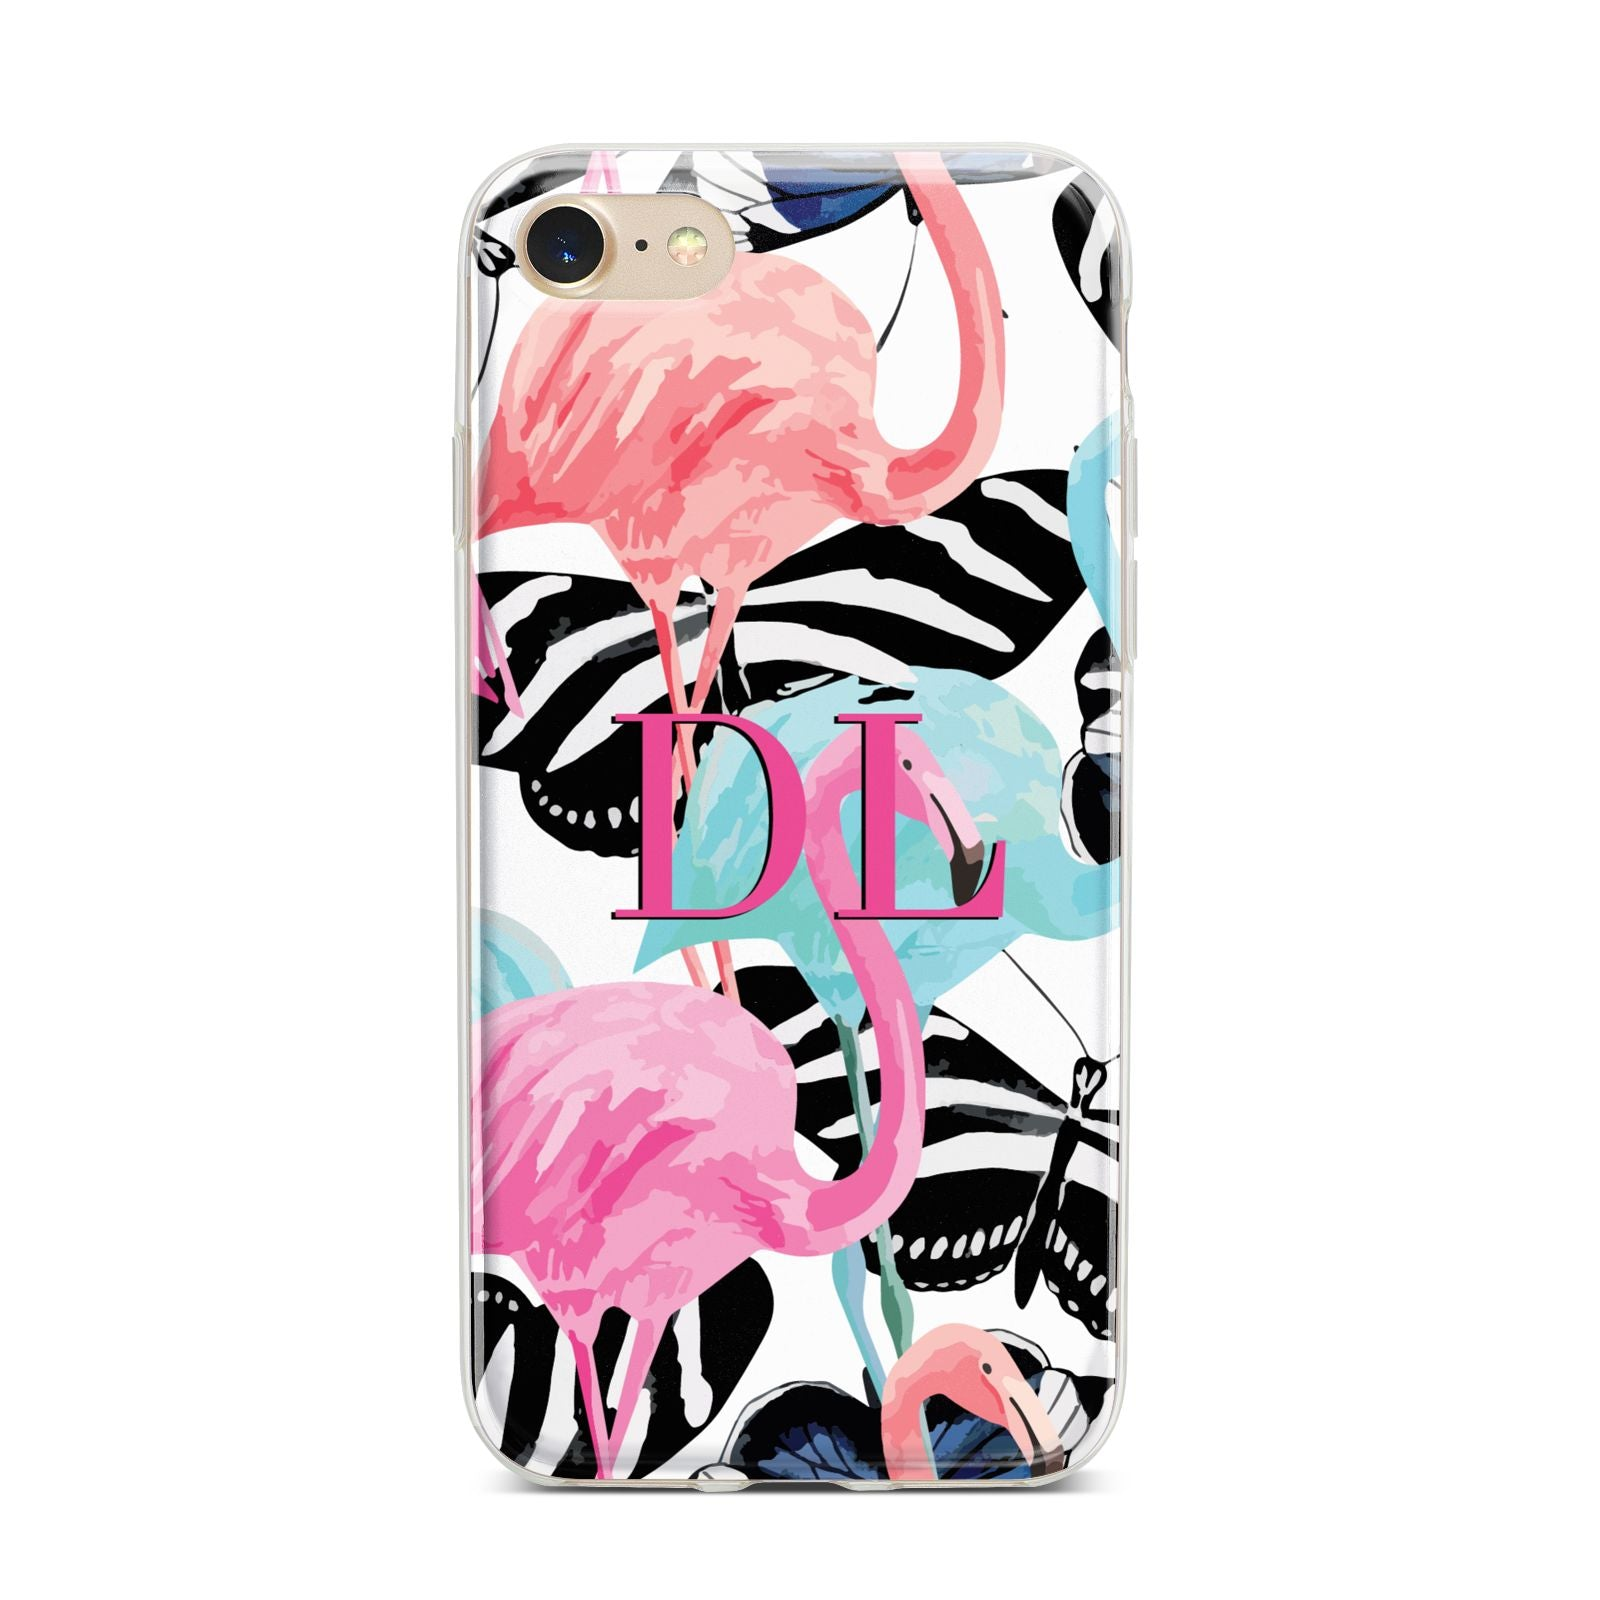 Butterflies Flamingos iPhone 7 Bumper Case on Gold iPhone